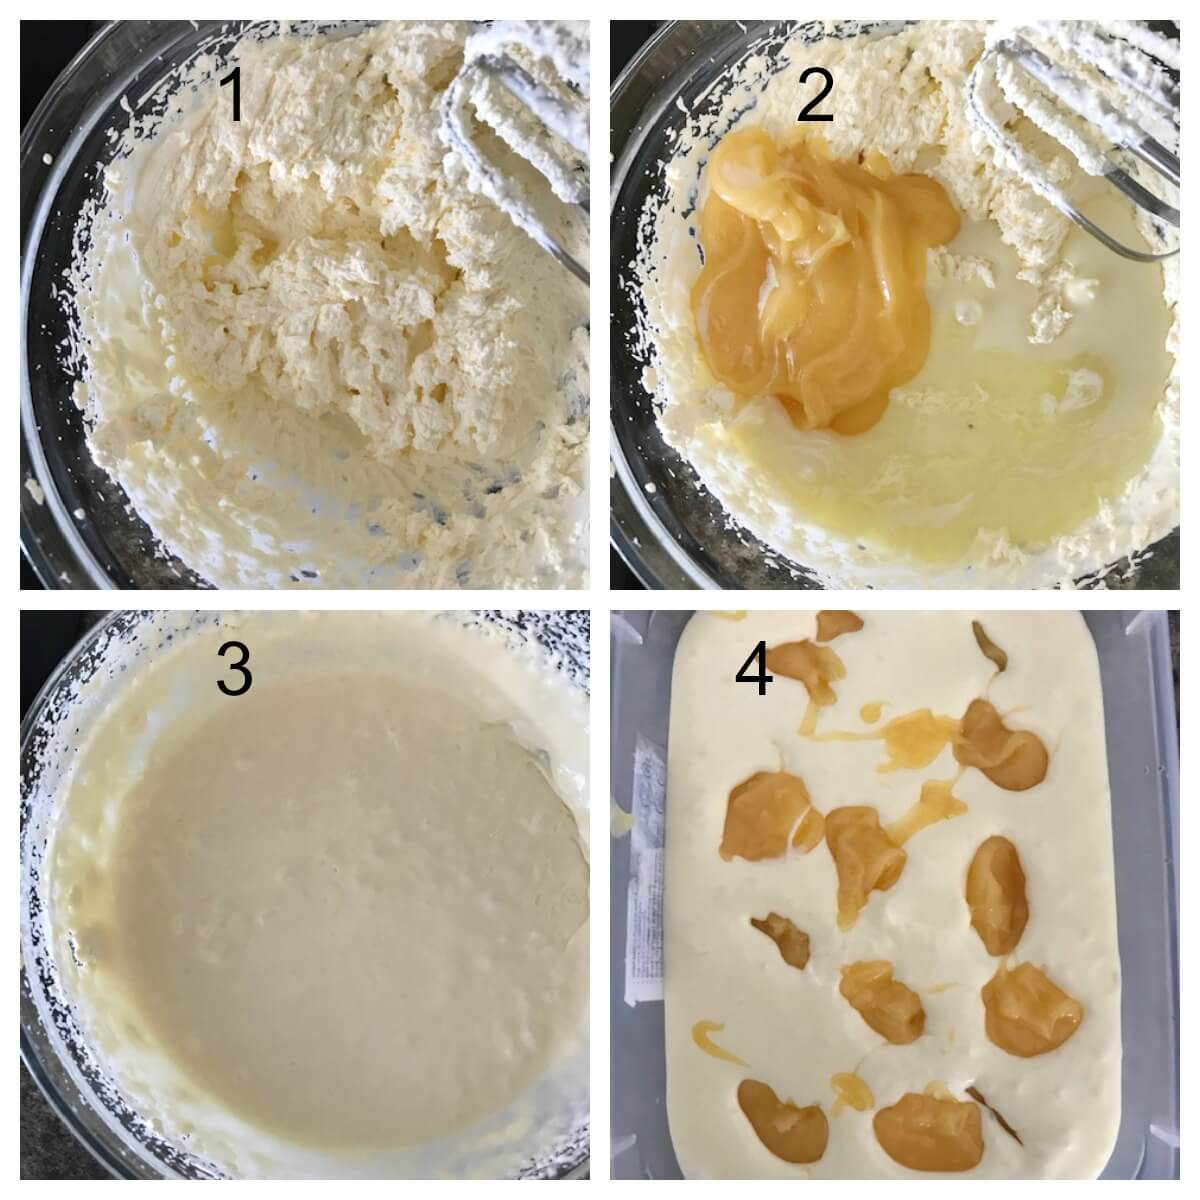 Collage of 4 photos to show how to make lemon curd ice cream with limoncello